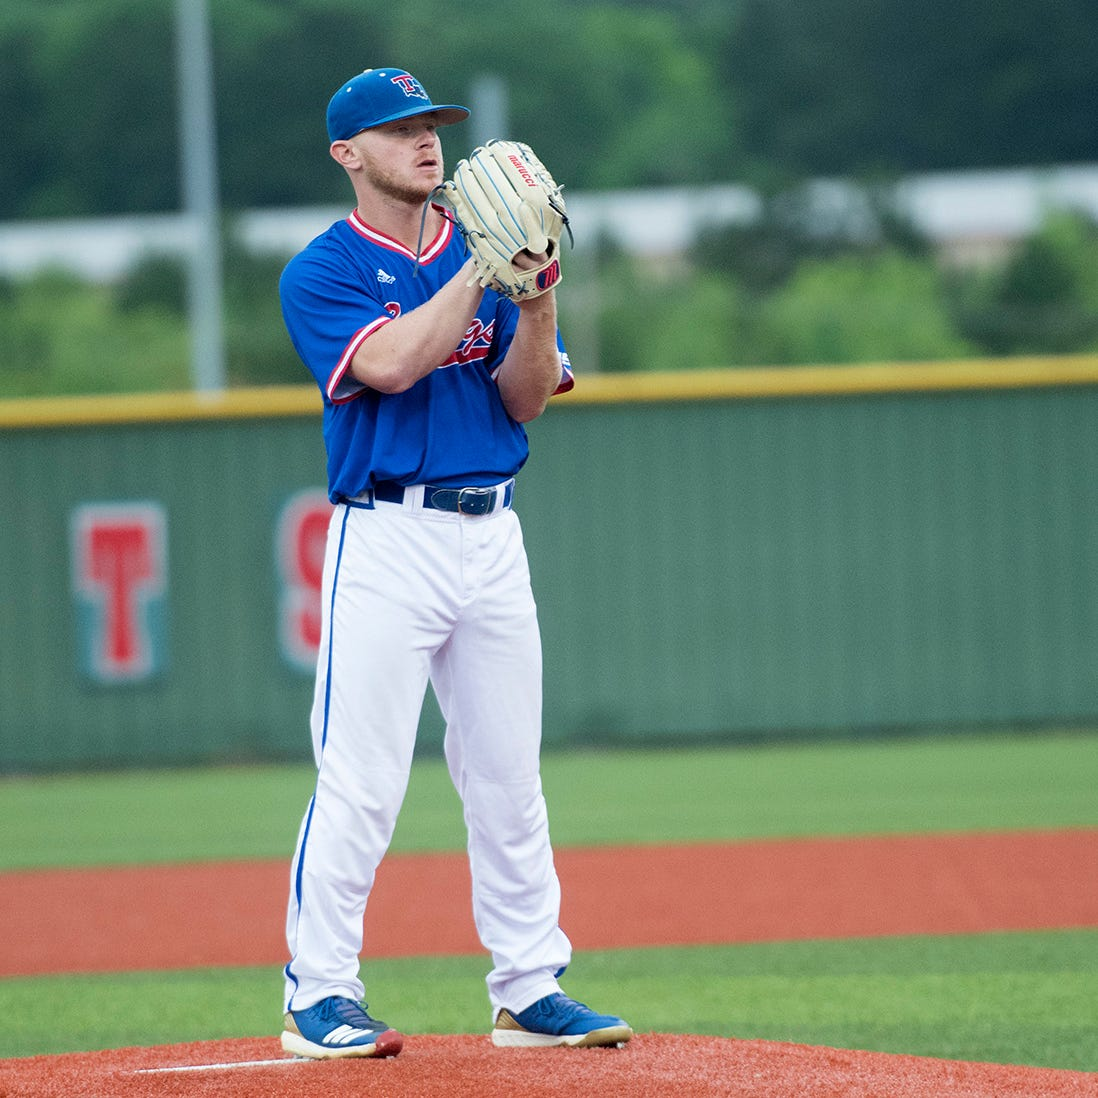 College roundup: Matt Miller deals in LaTech's shutout at FIU